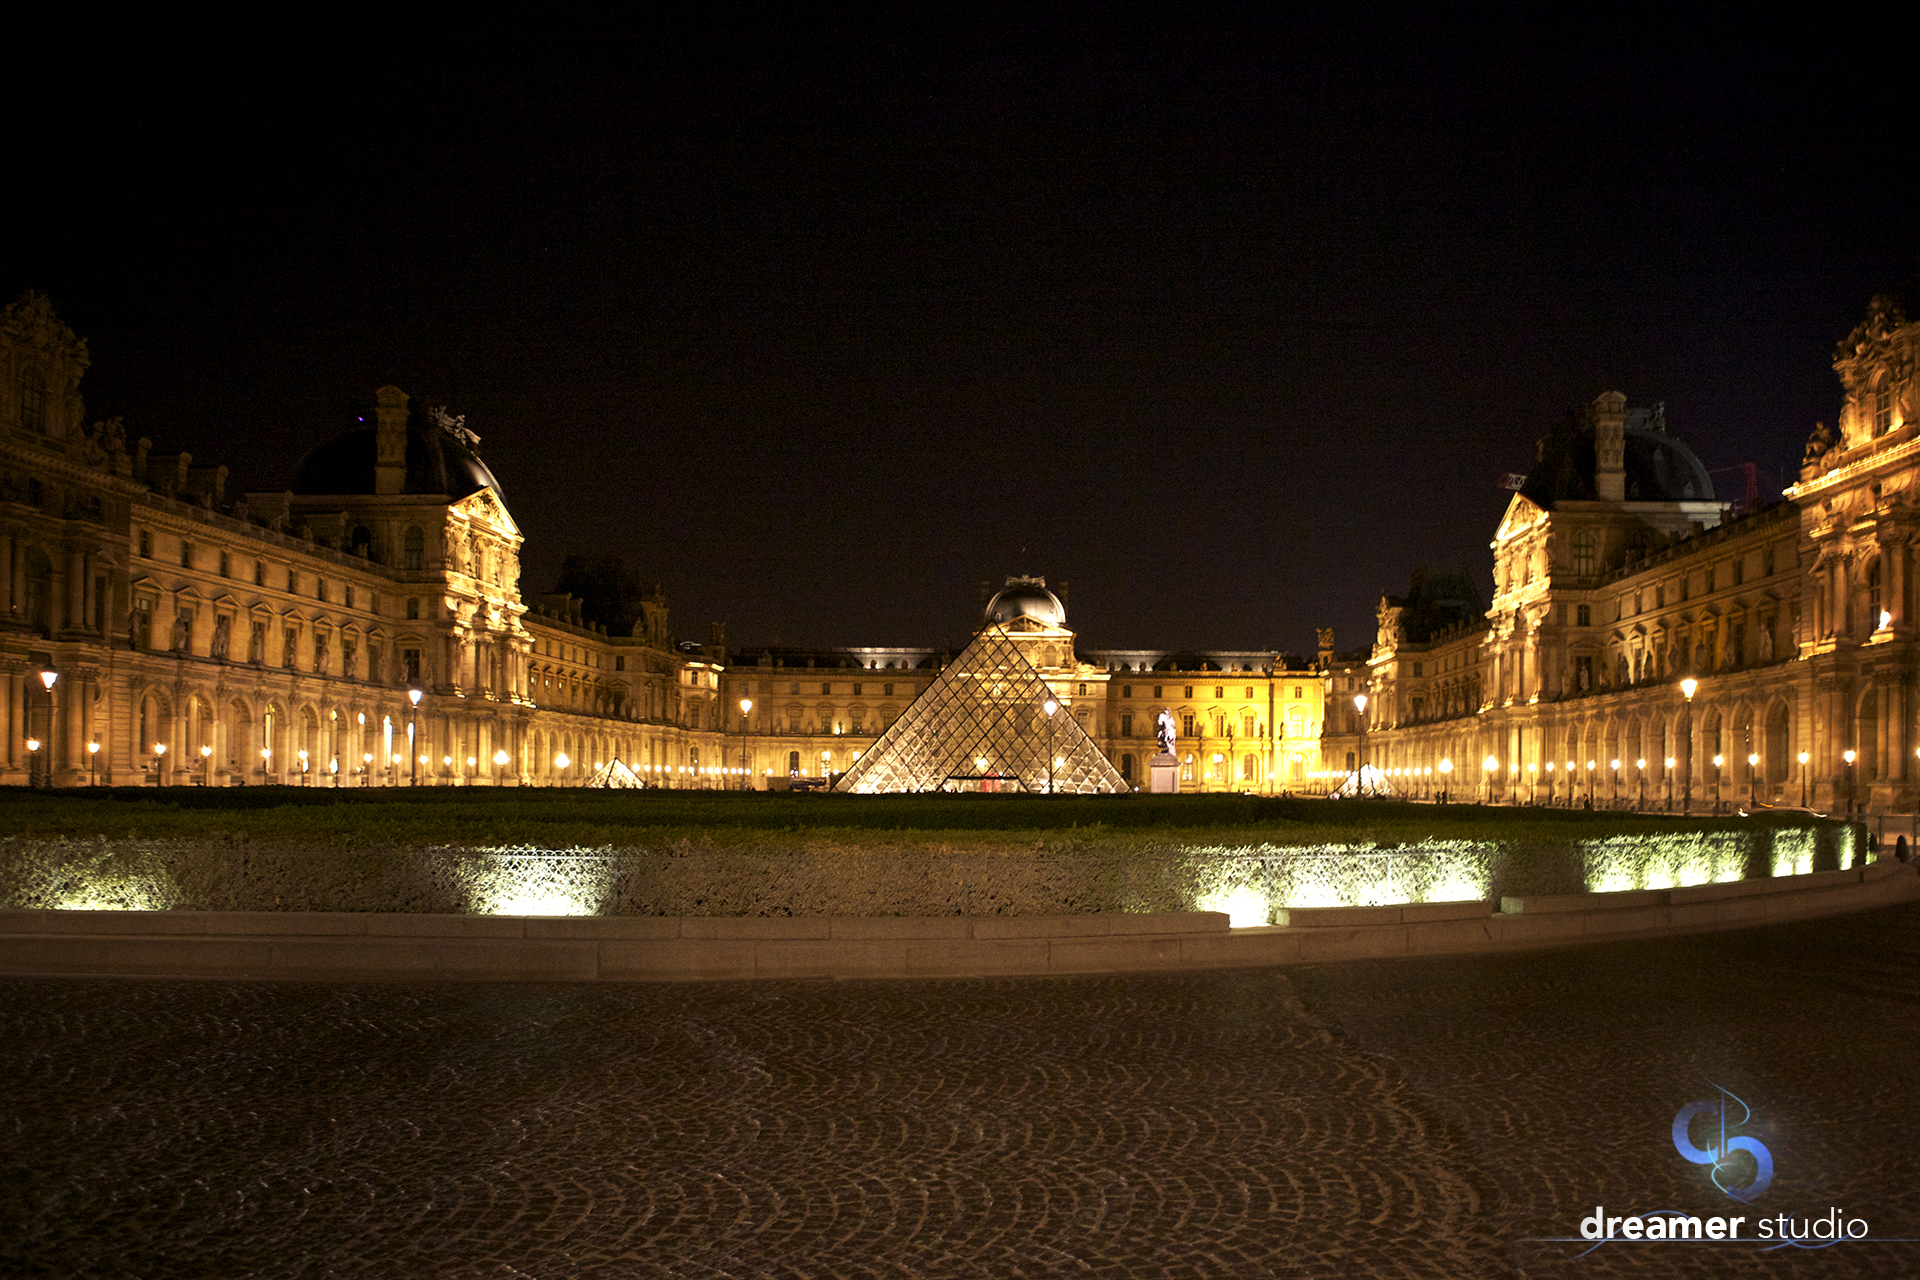 Paris_IMG_1782_small.jpg